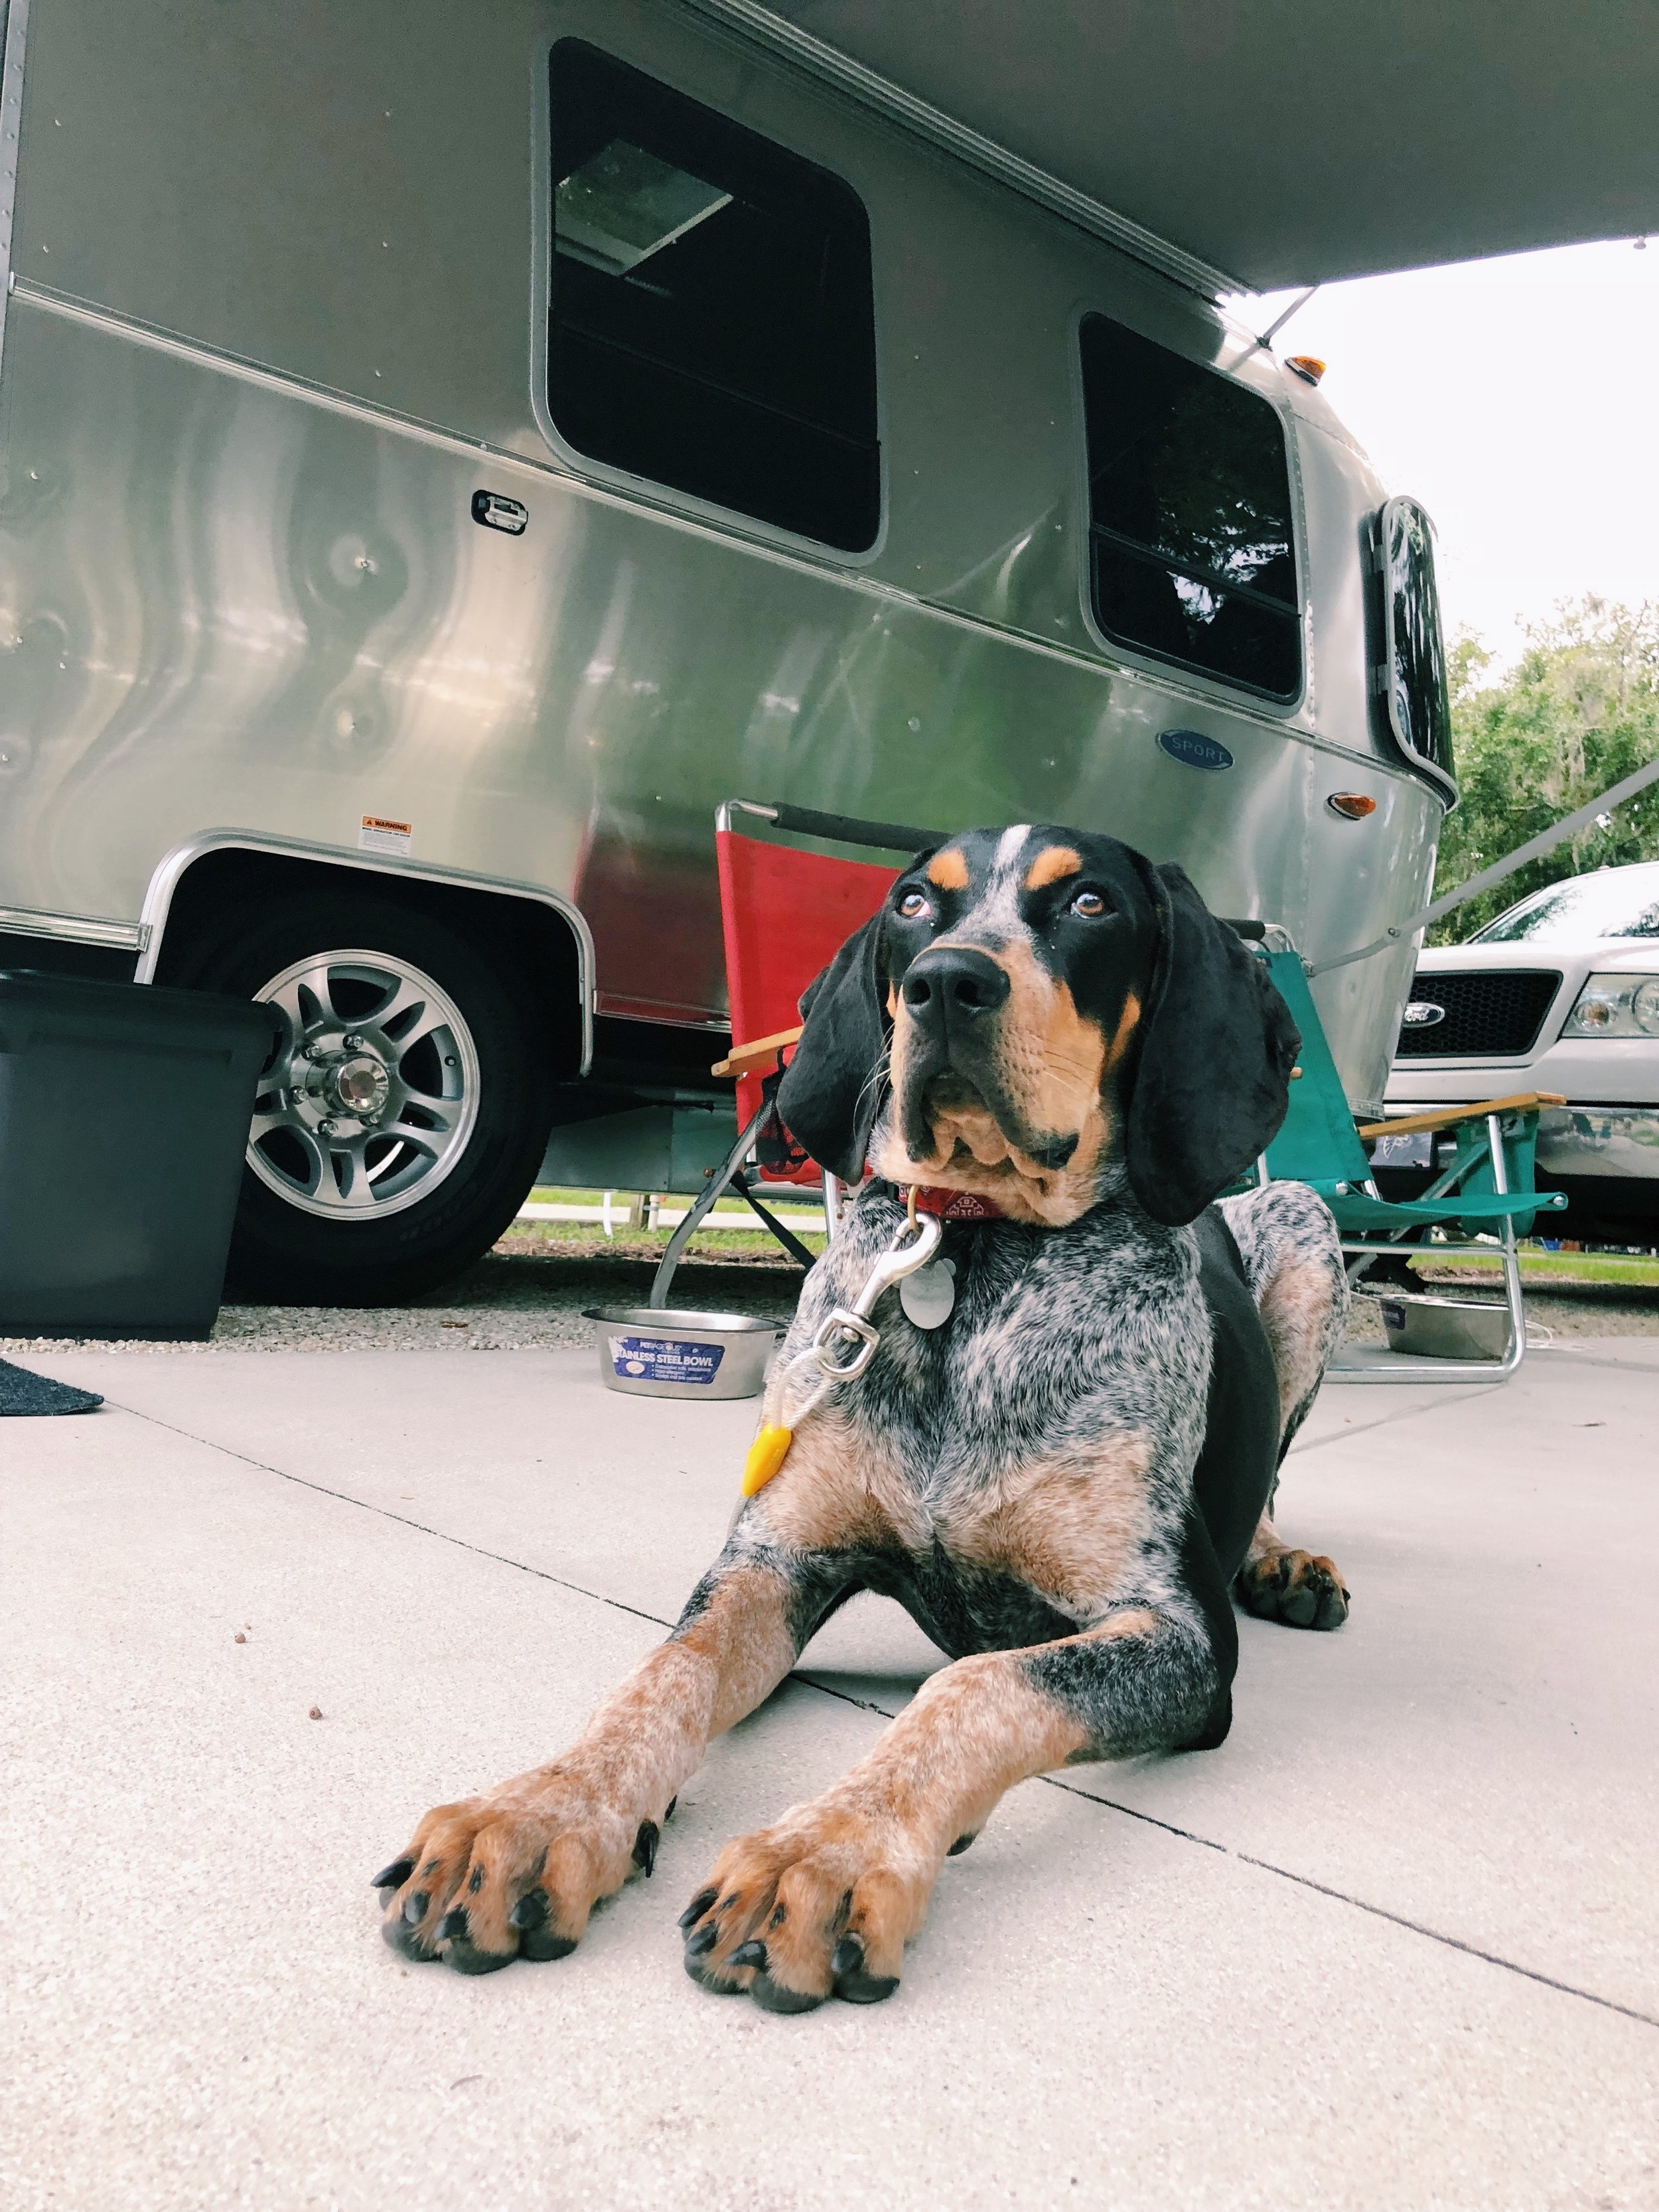 Grover loves camping!